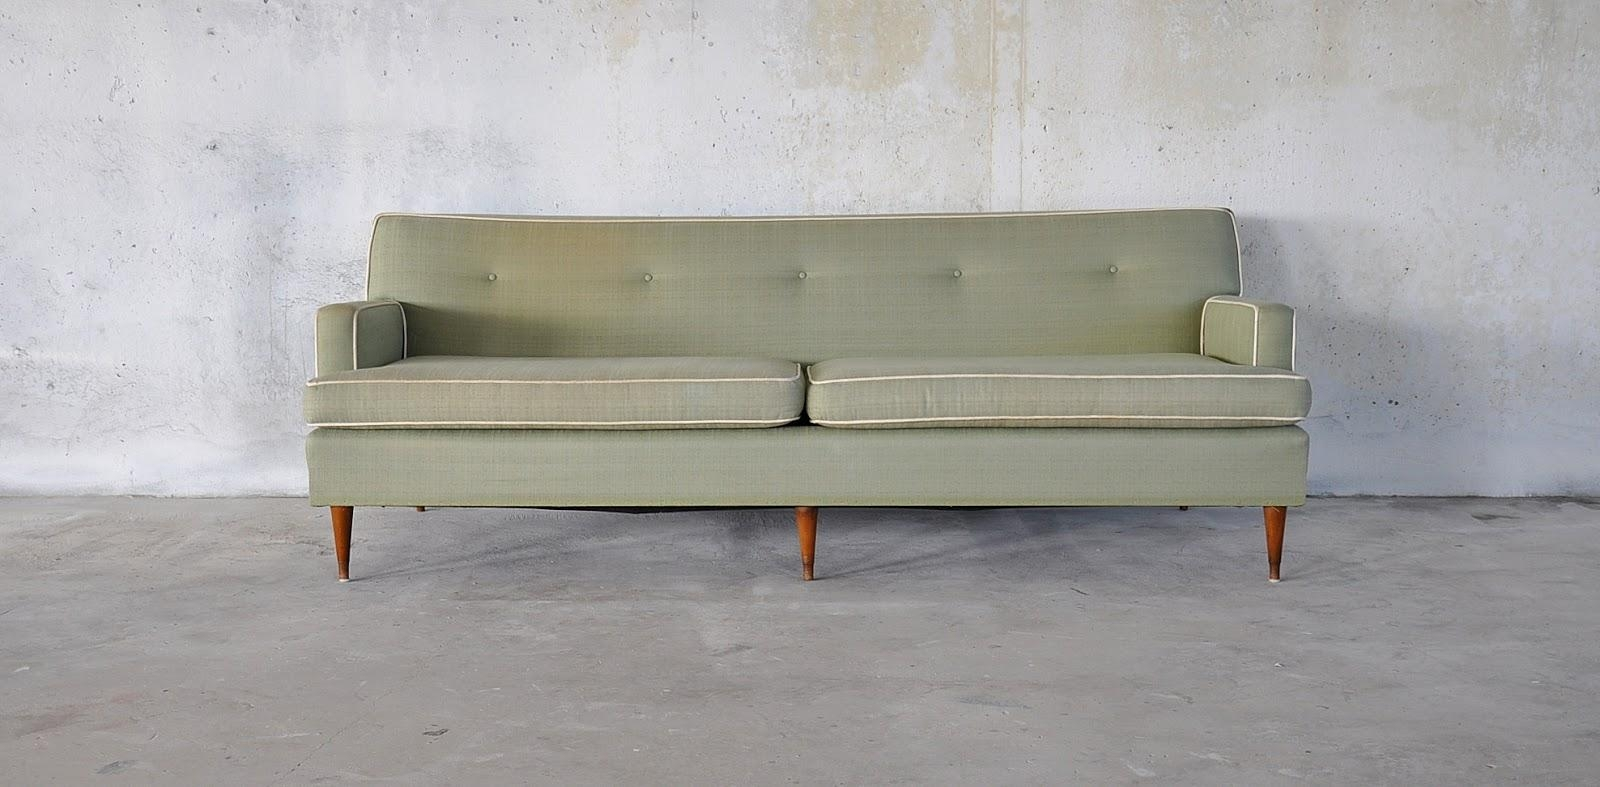 Stylish Danish Modern Sofa — Prefab Homes Regarding Modern Danish Sofas (View 15 of 20)